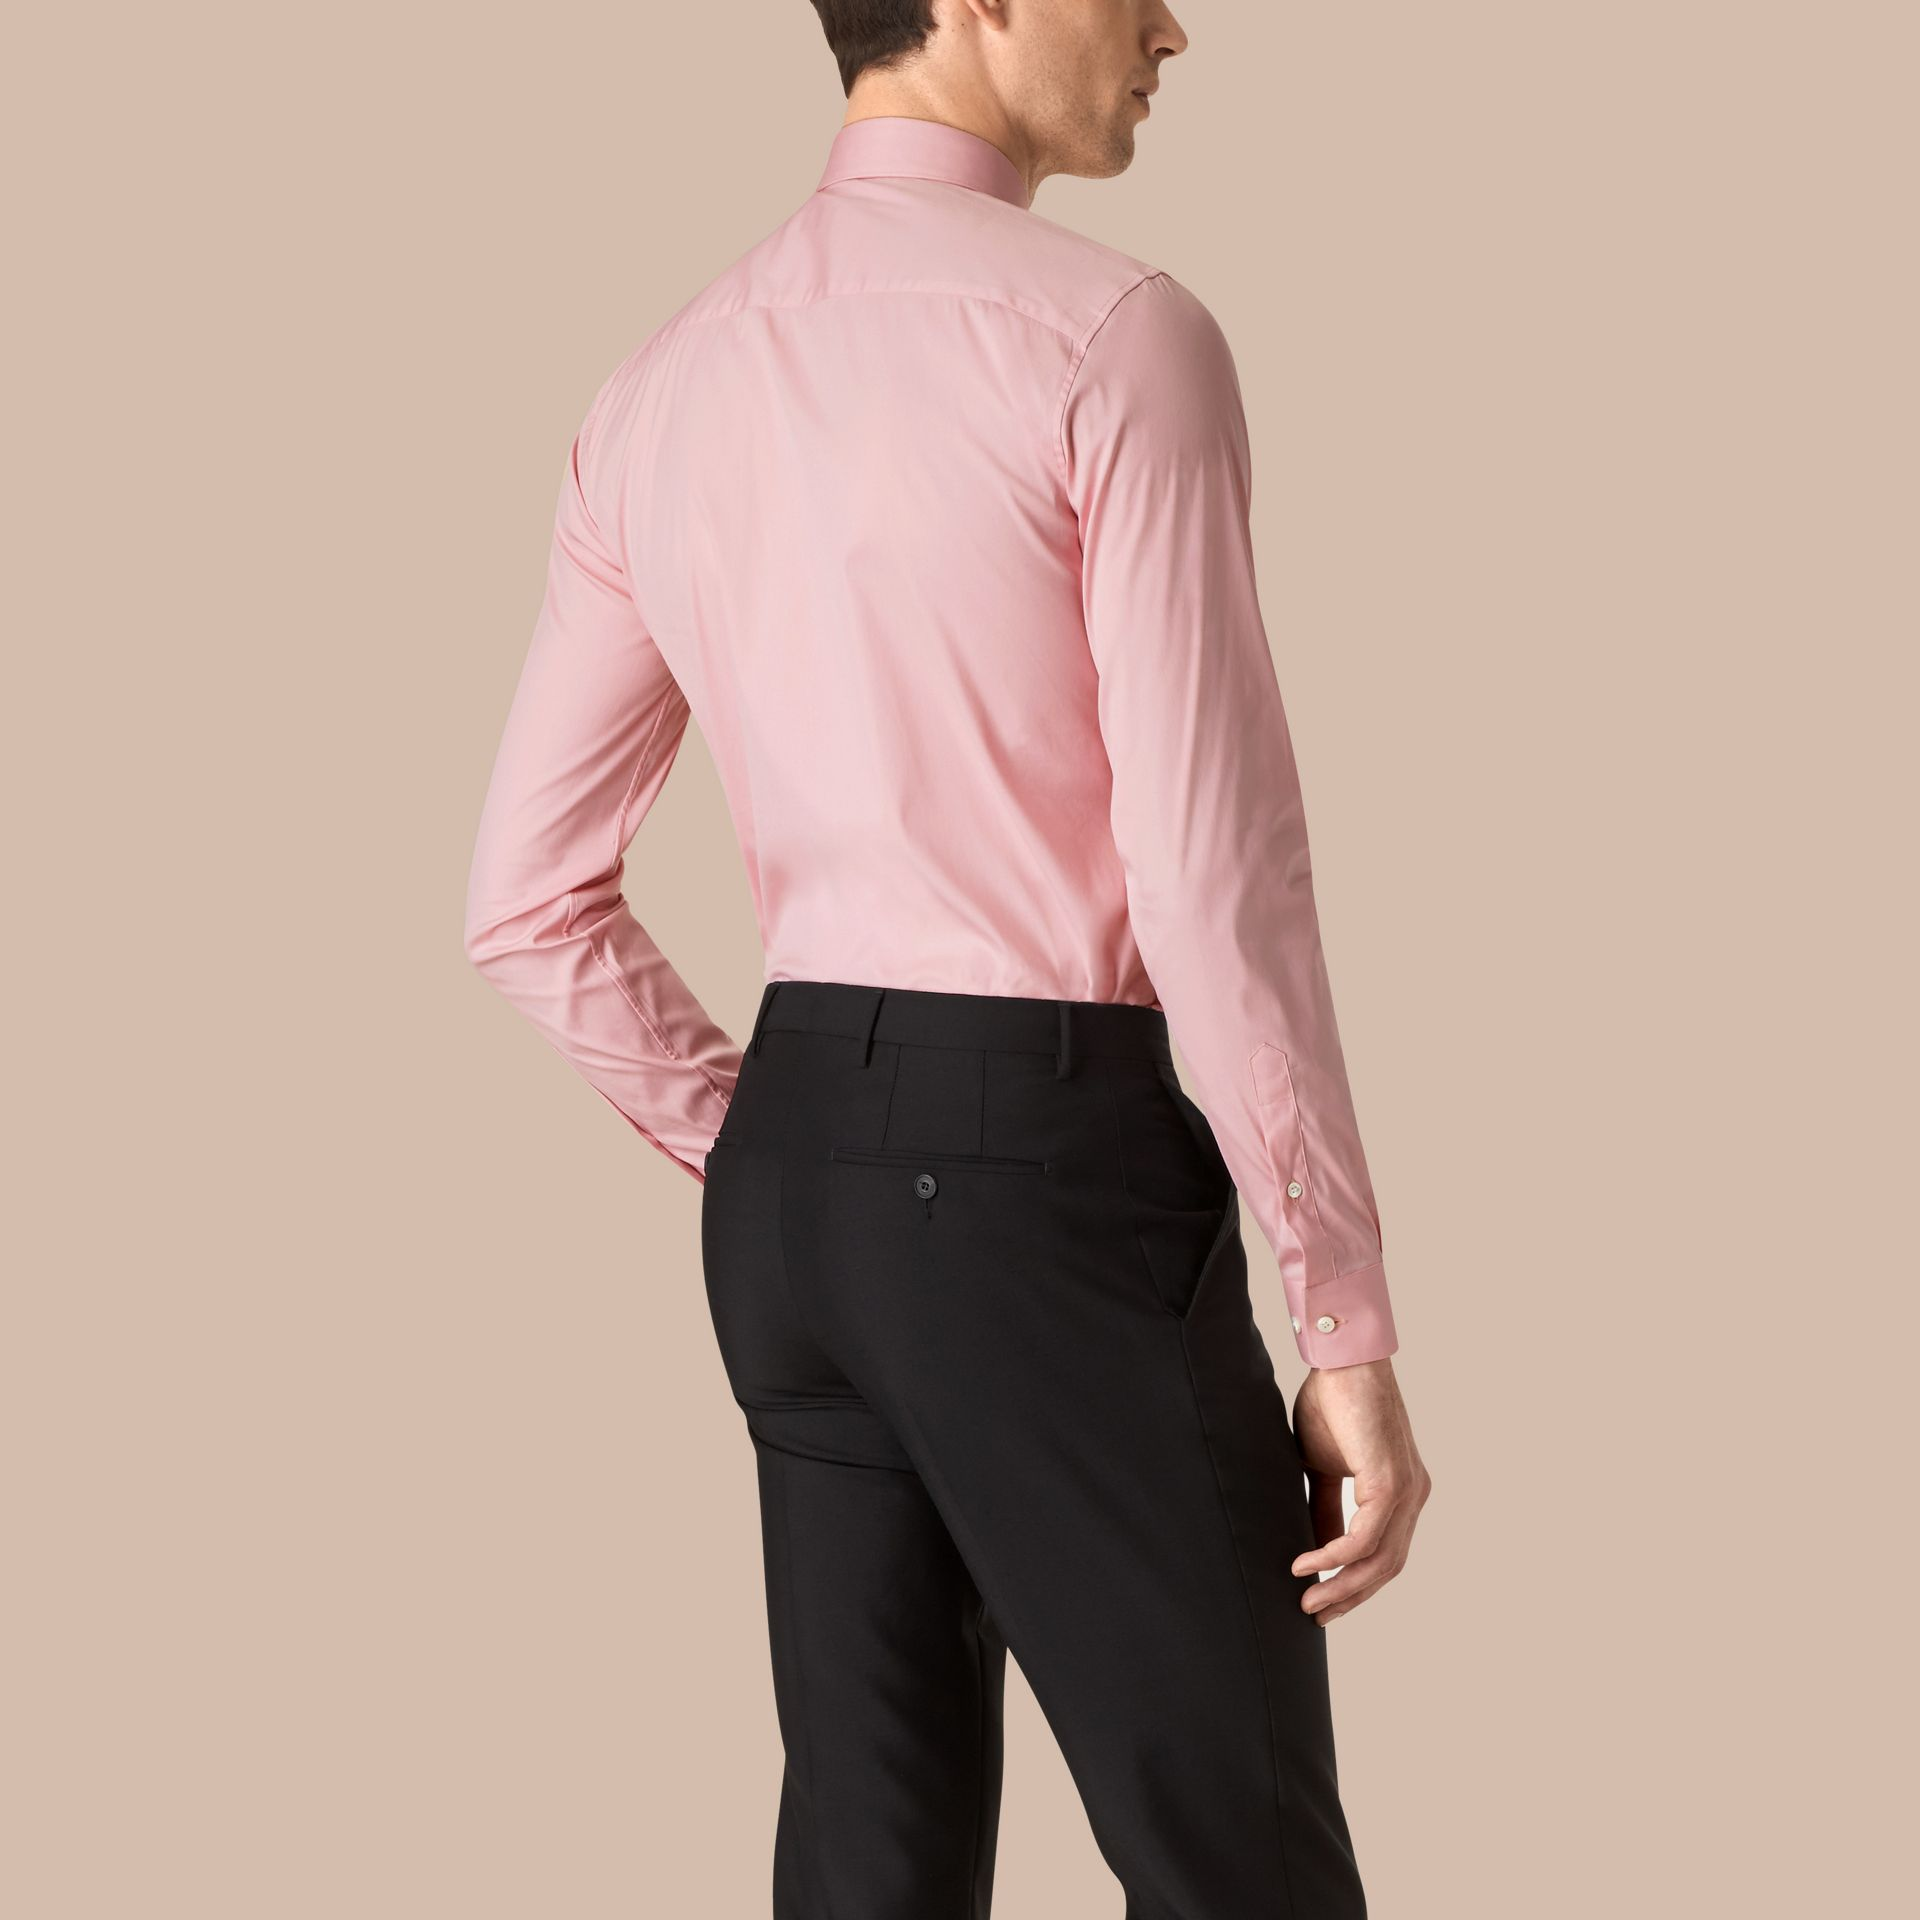 City pink Slim Fit Stretch Cotton Poplin Shirt City Pink - gallery image 3